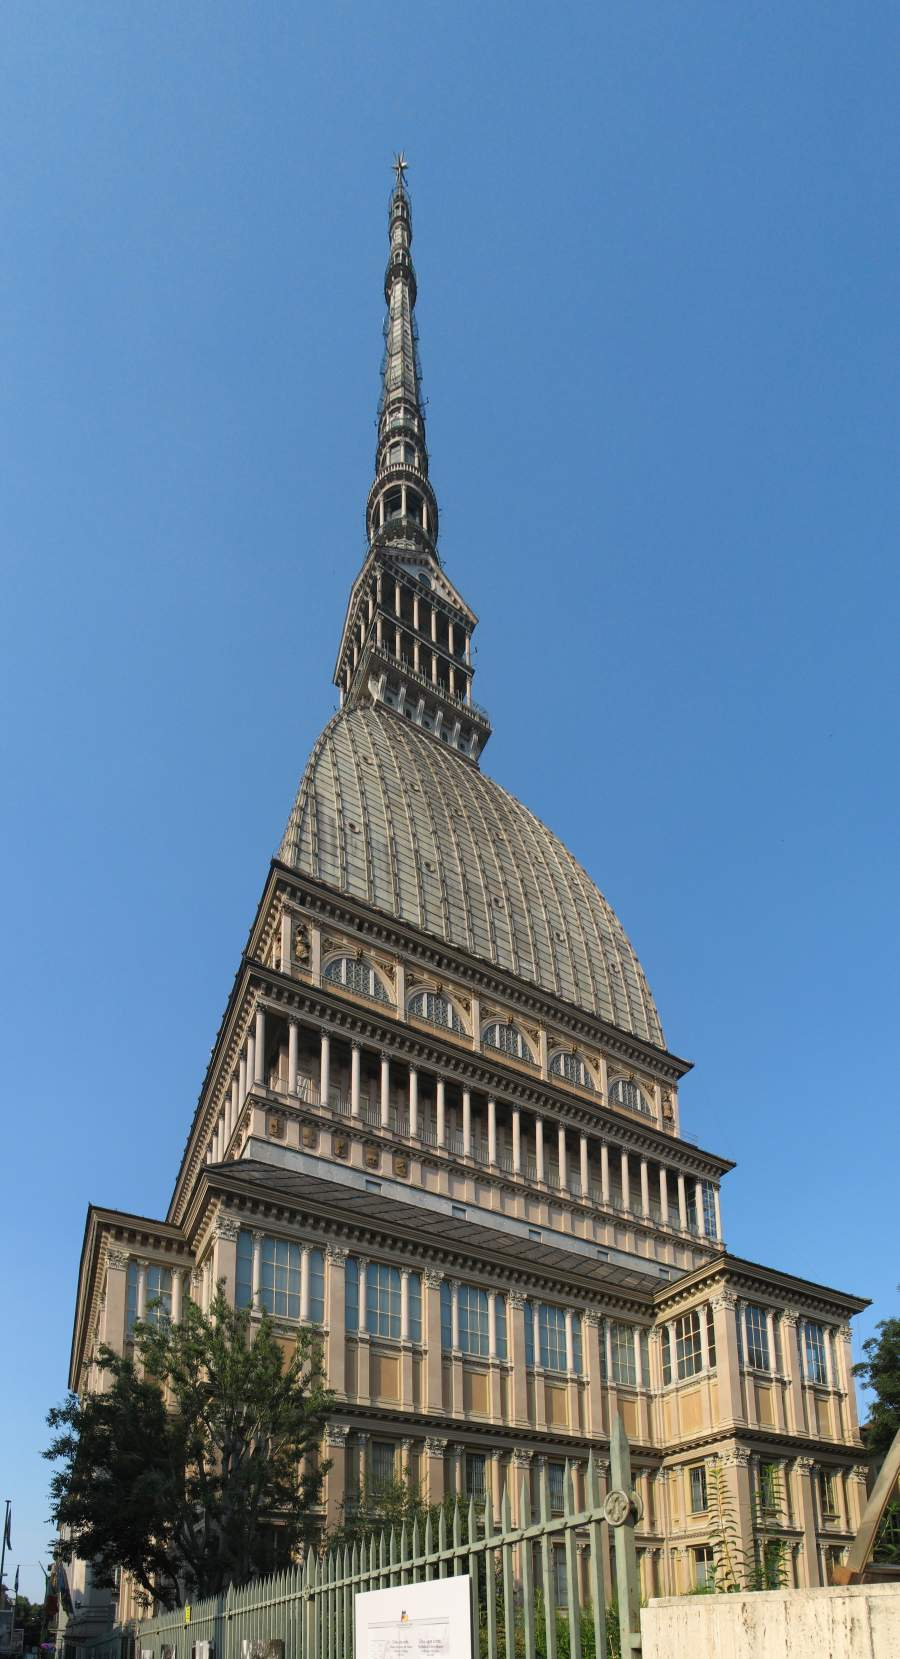 Turin guide - Briefly about Turin